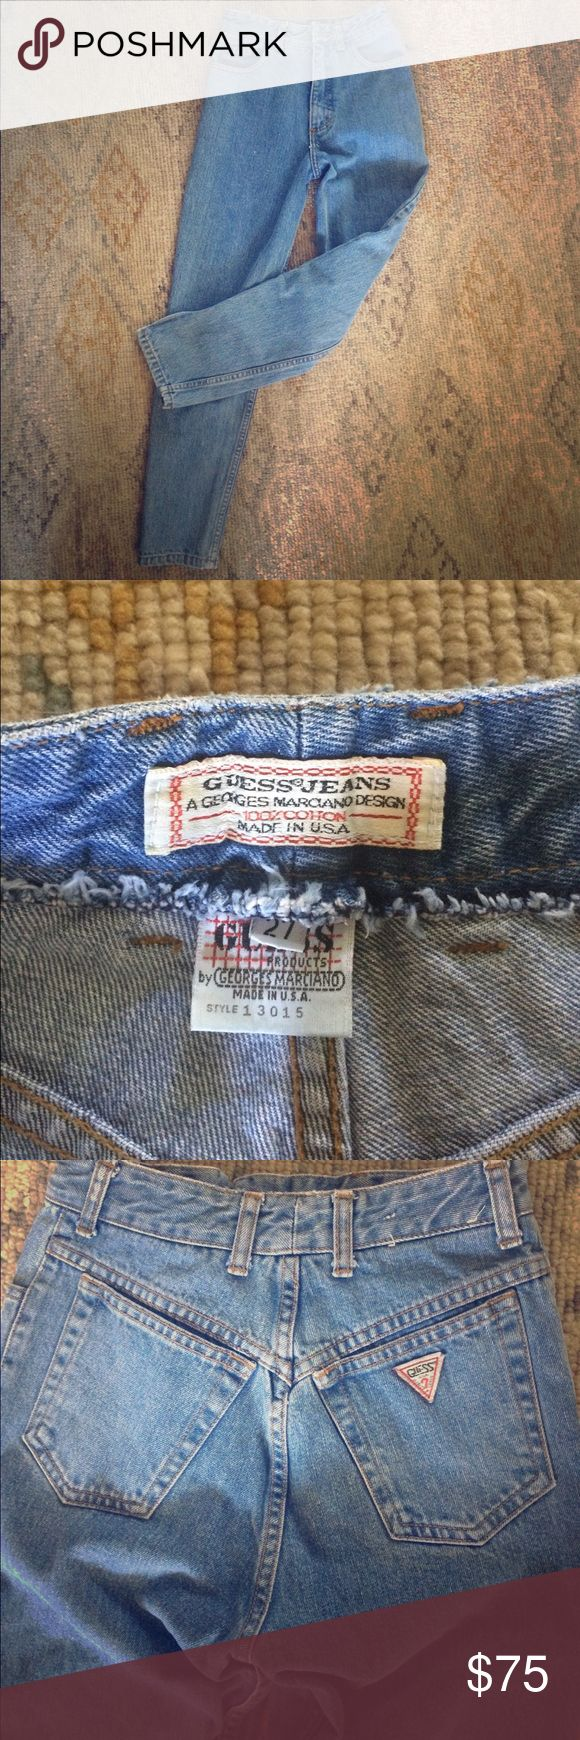 "Vintage Guess Jeans Circa 1980's from my high school years, these vintage Guess made in USA jeans feature a front zip closure and bottom ankle zippers. In like new condition. These are an original classic you would find at UO for over $100 mid rise to ""mom jean"" fit. Guess by Marciano Jeans Straight Leg"